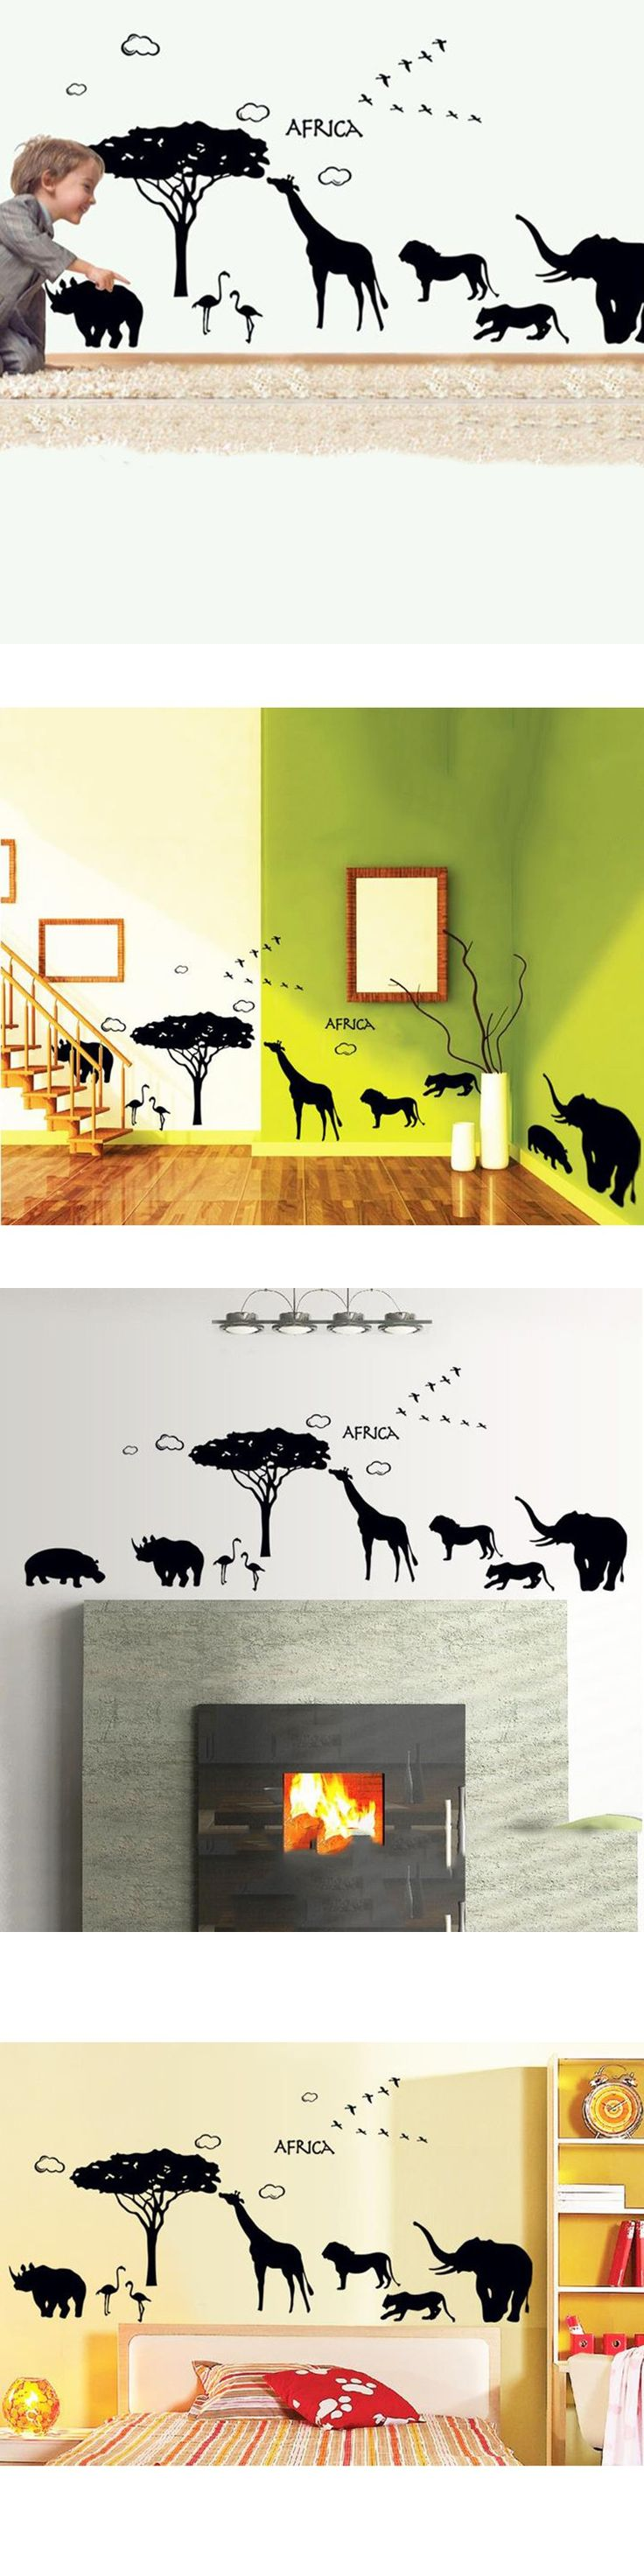 Unique Horse Wall Decals Ideas On Pinterest Horse Rooms - Wall decals 2016